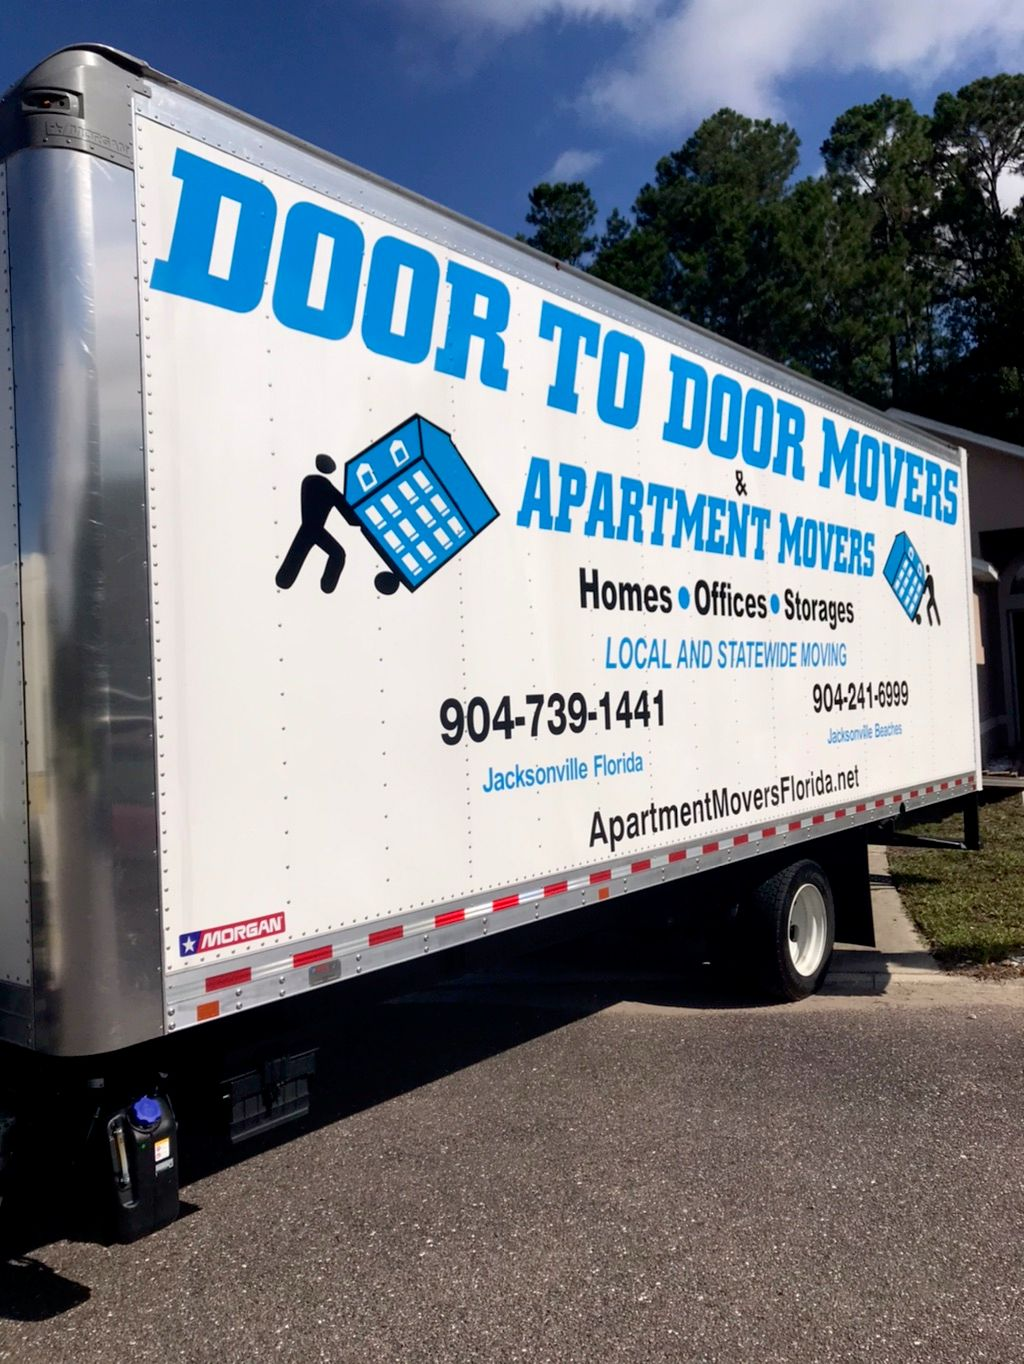 Door To Door Movers & Apartment Movers